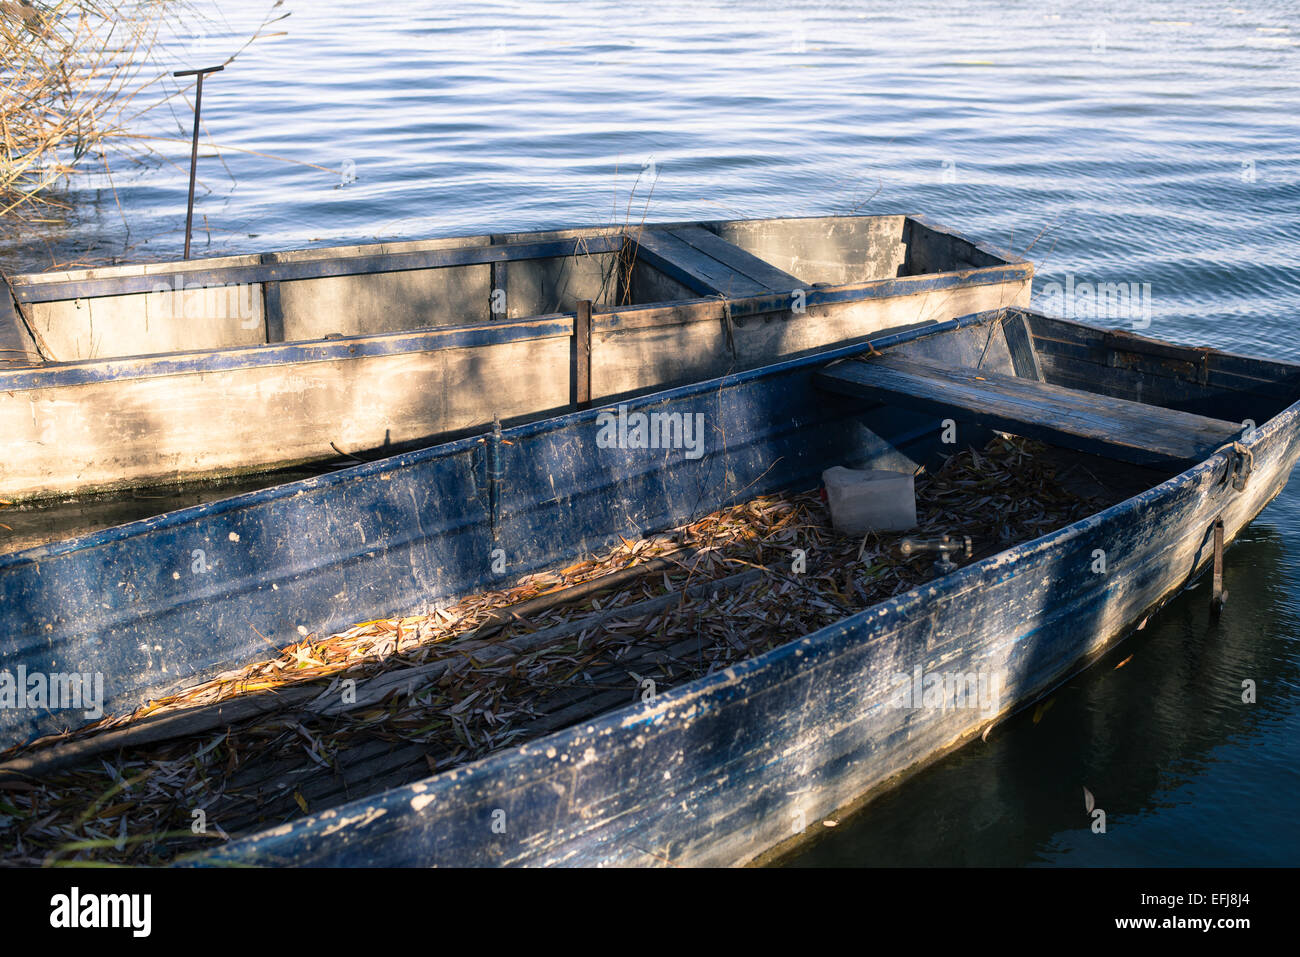 Two boats at moorage on a lake - Stock Image